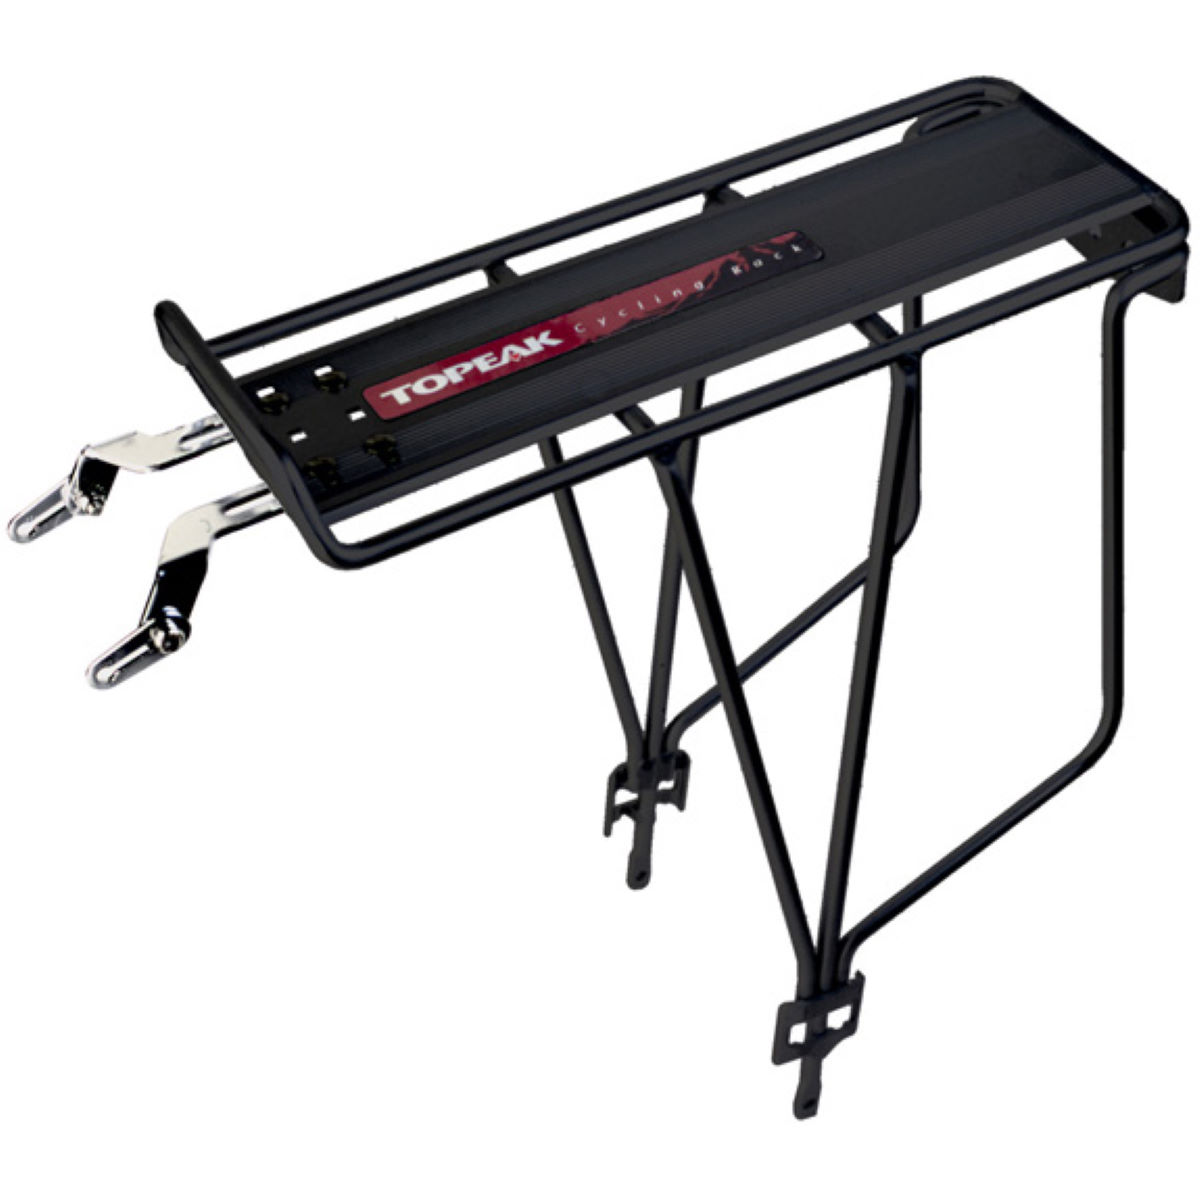 Topeak Topeak Super Tourist Rack   Pannier Racks